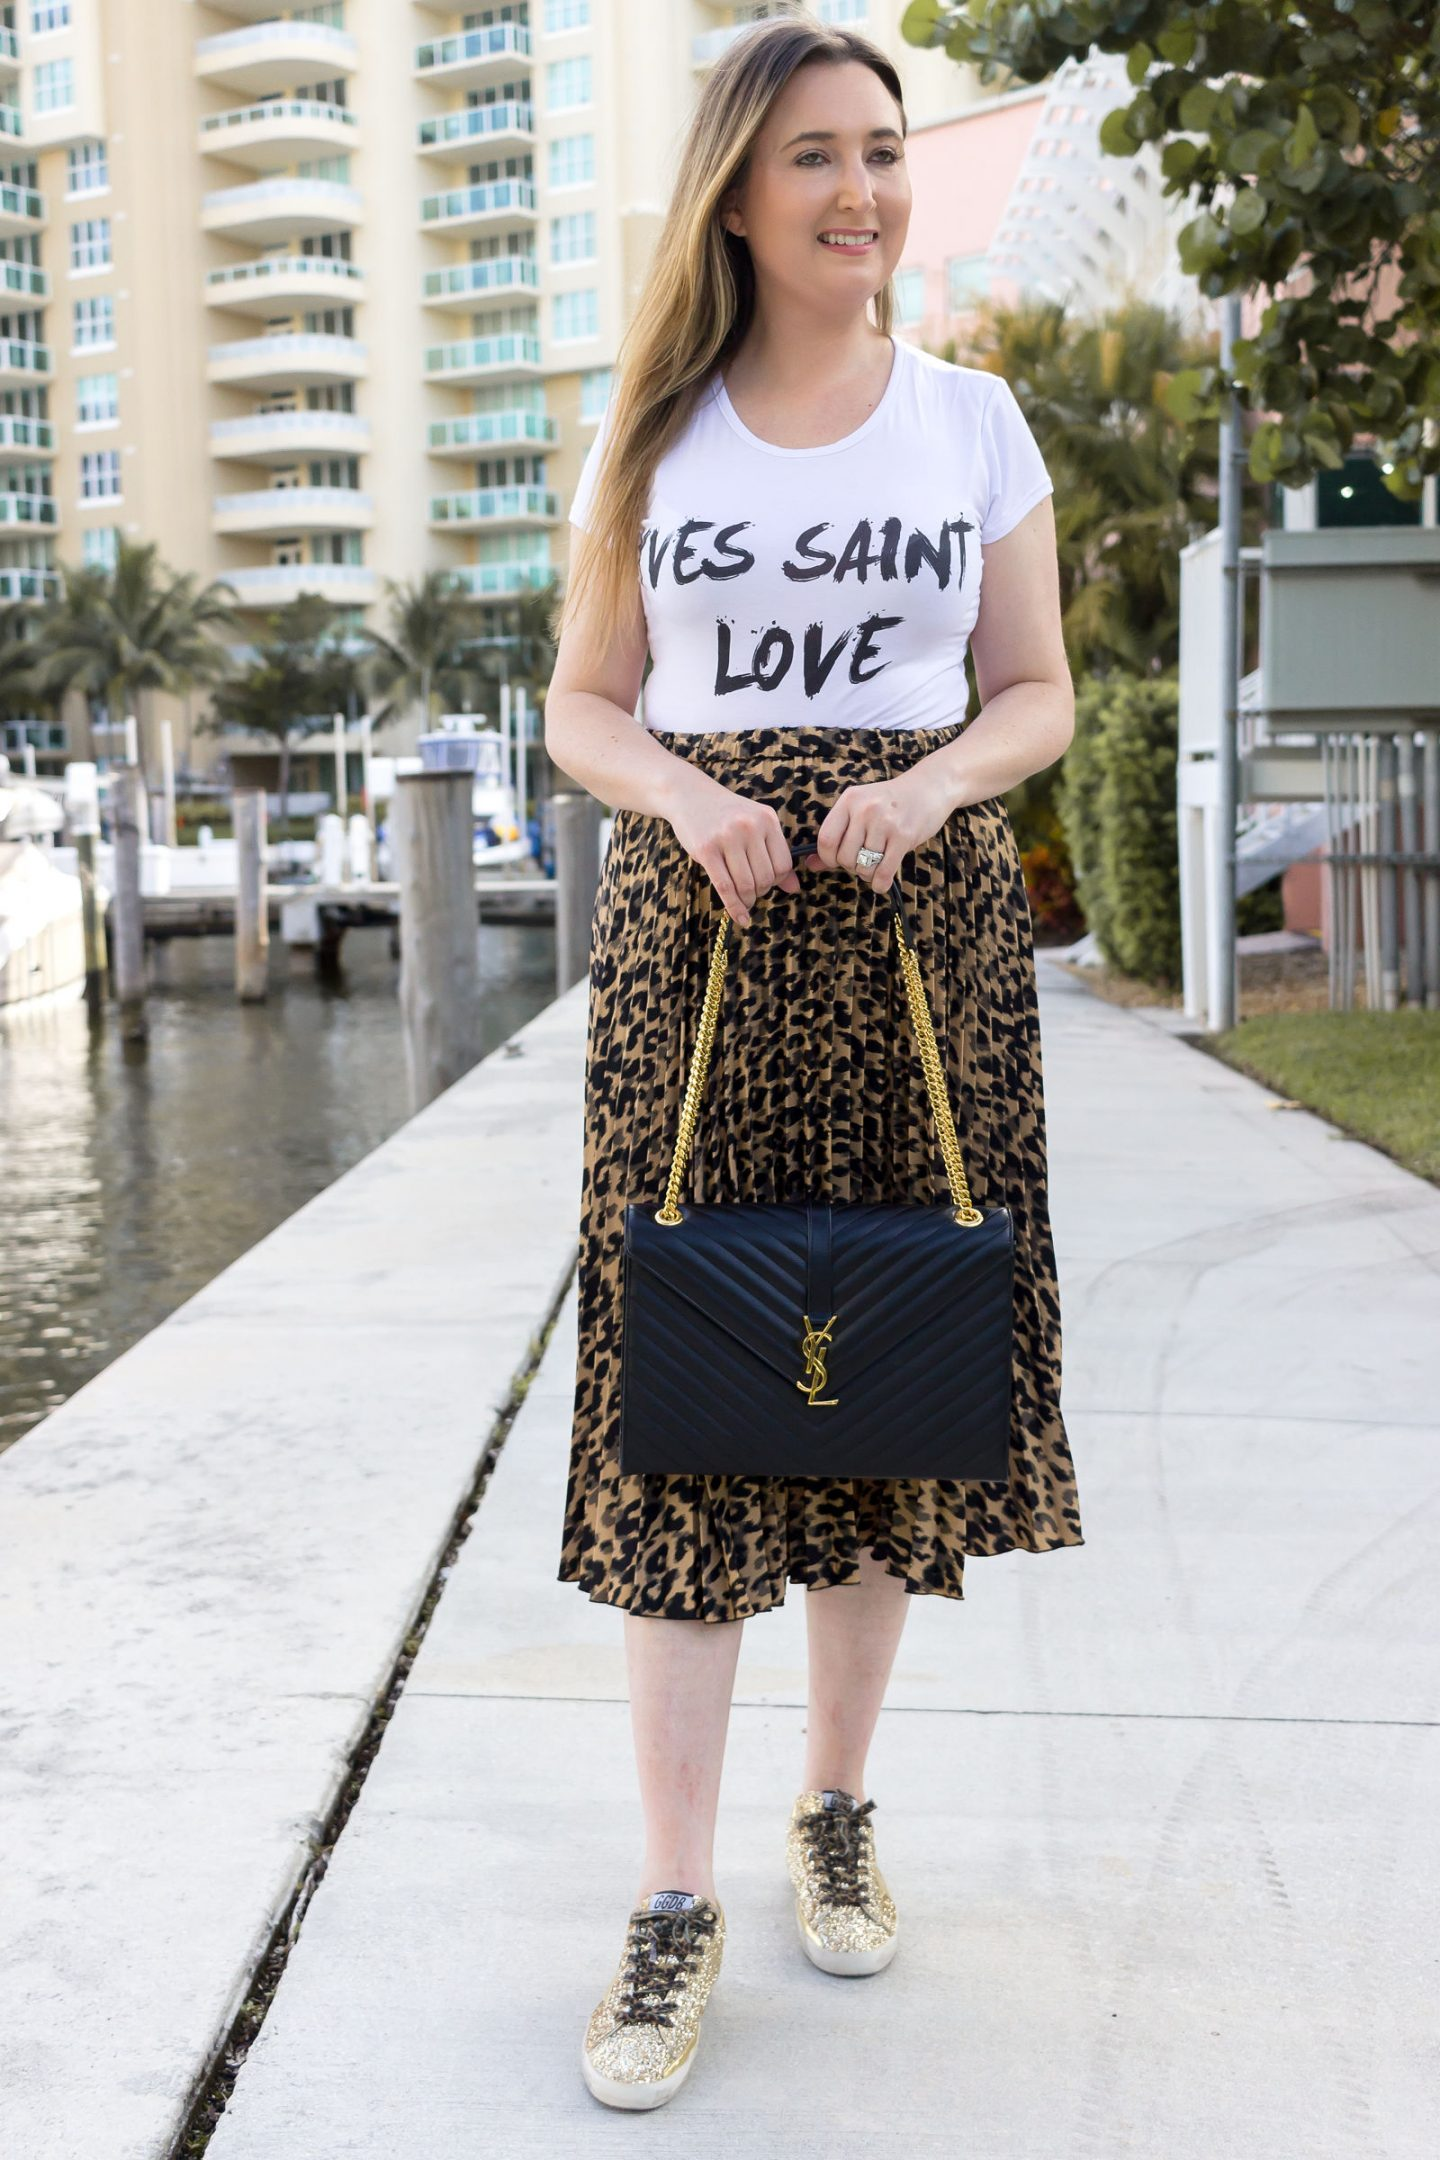 Where To Get The Saint Laurent Look For Less, femme luxe, femme luxe US, yves saint laurent shirt, ysl shirt, yves saint love, ysl monogram shoulder bag, golden goose glitter sneakers, leopard midi skirt, leopard skirt